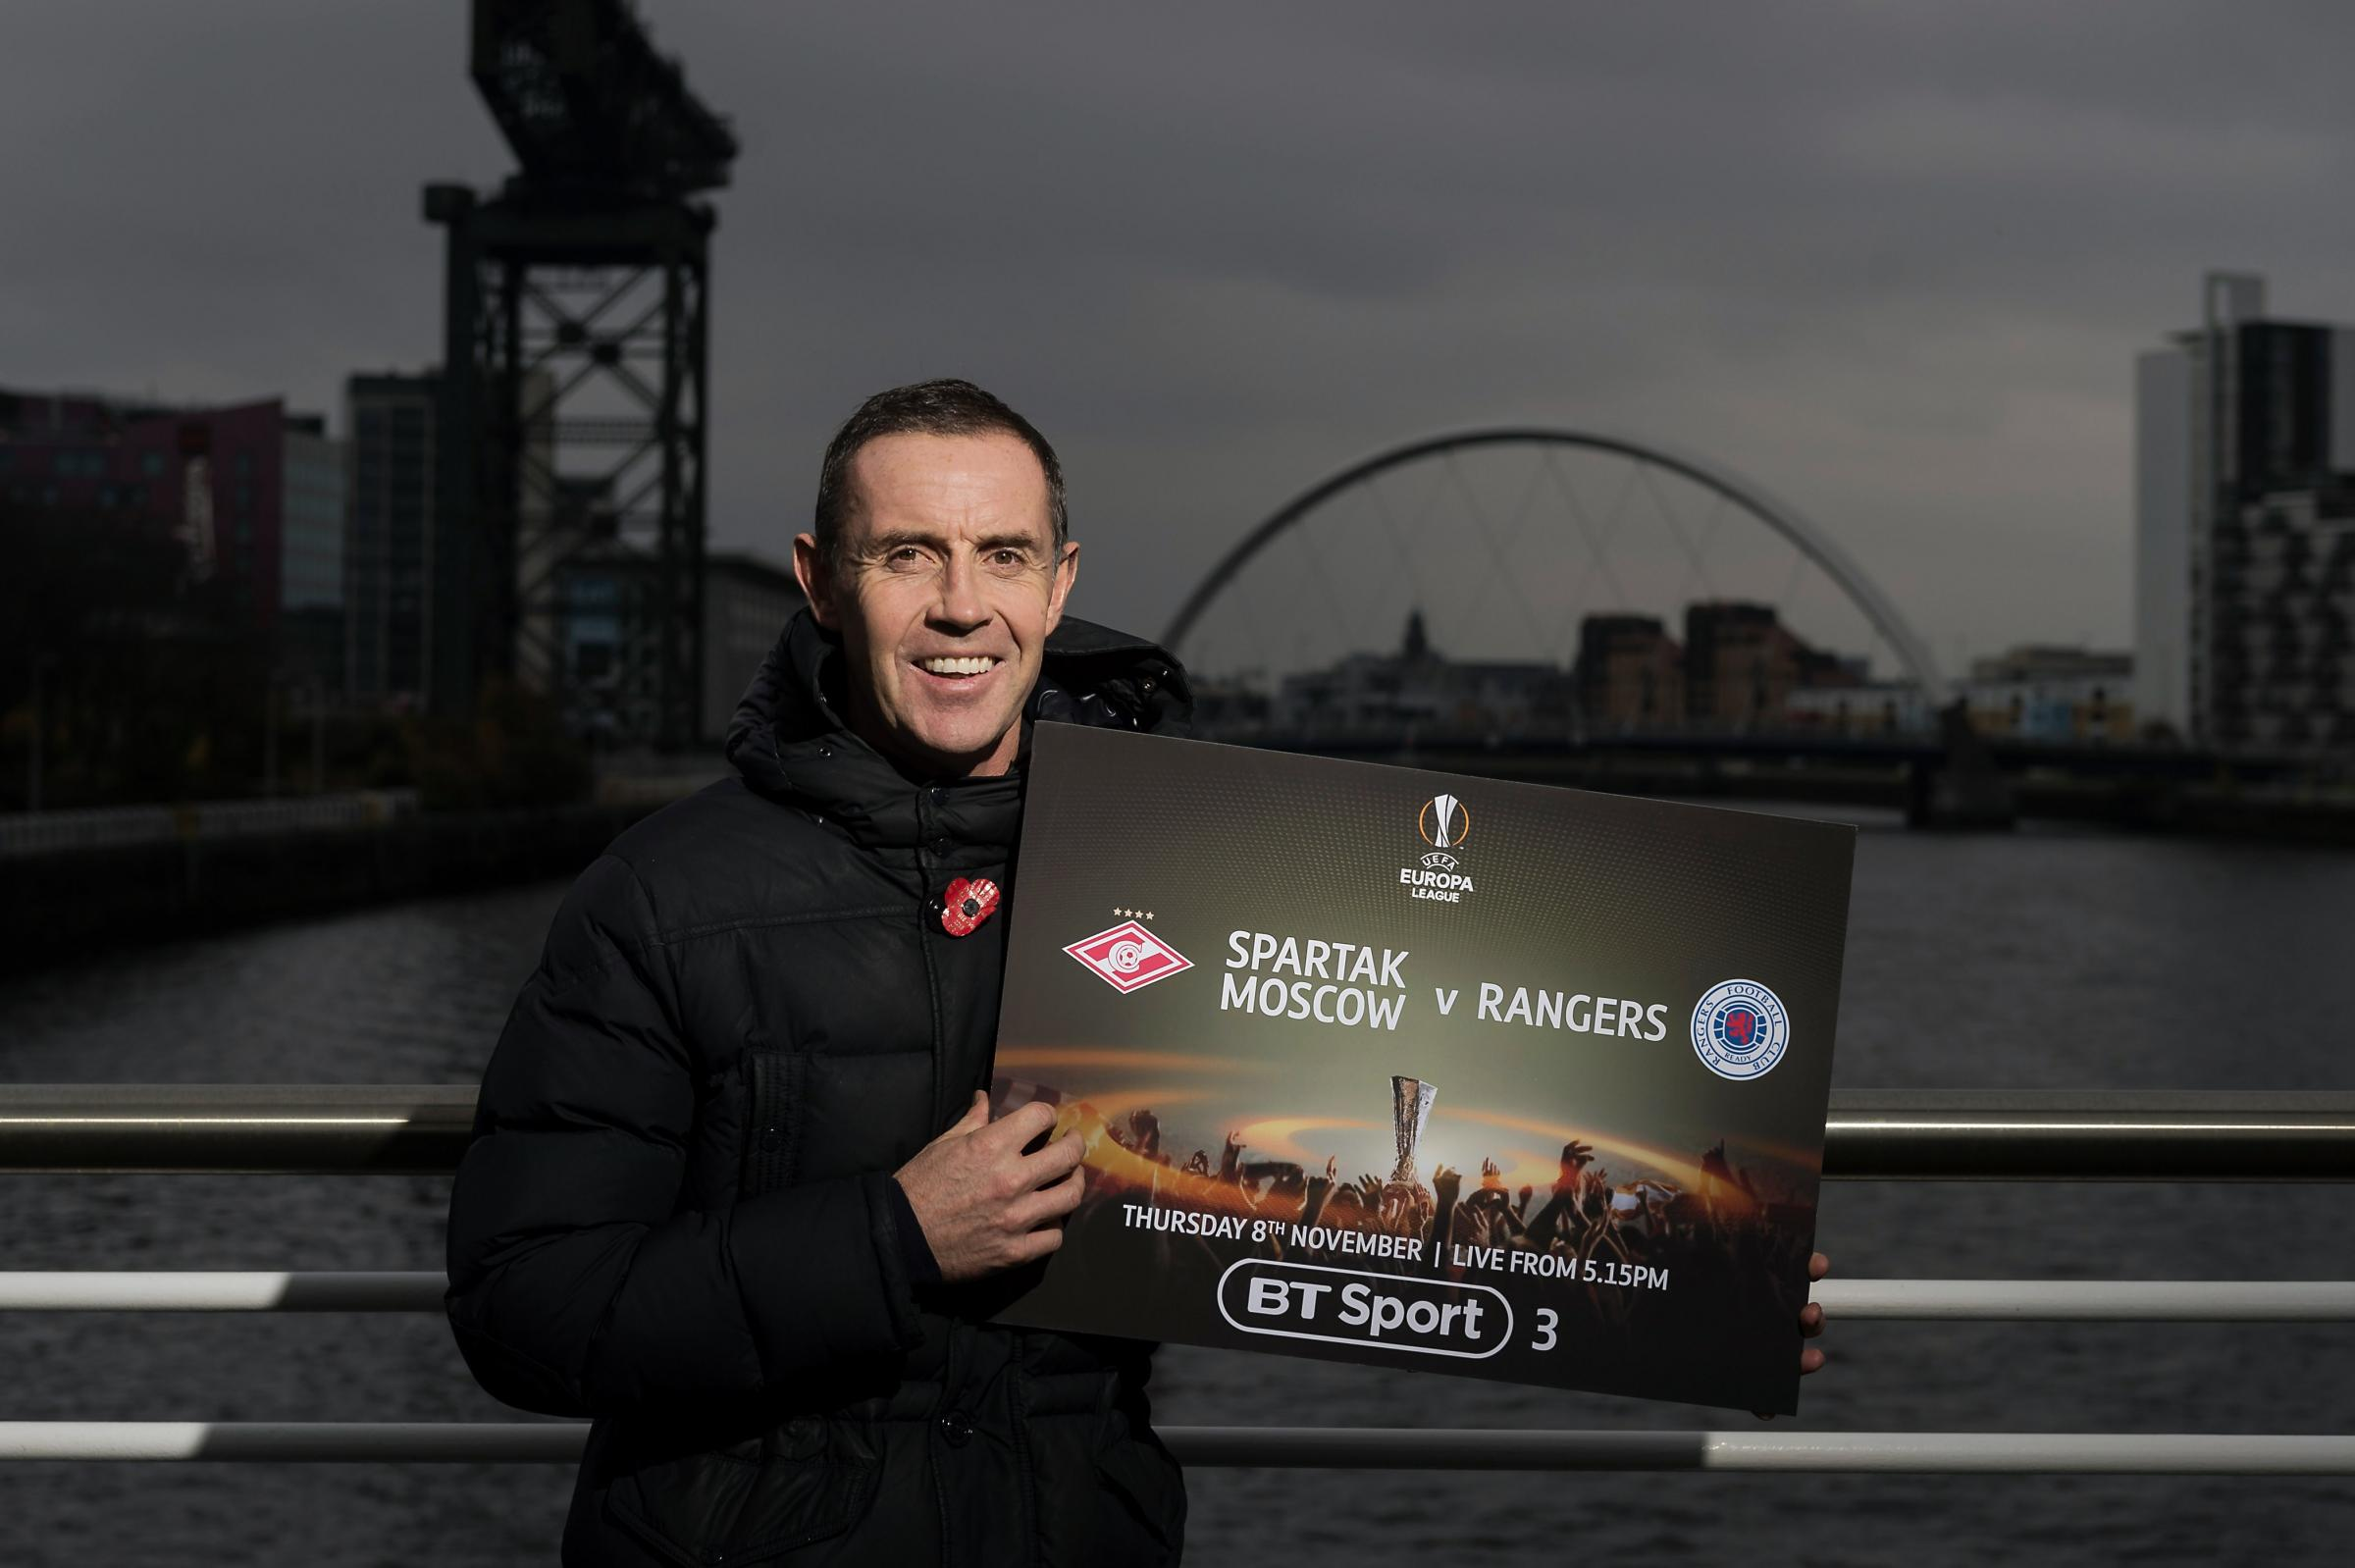 Glasgow, 6/11/18.David Weir, appearing on behalf of BT Sport to promote the broadcaster's coverage of this week's Europa League action including Spartak Moscow v RangersPic free for first use relating to BT Sport.For more information please